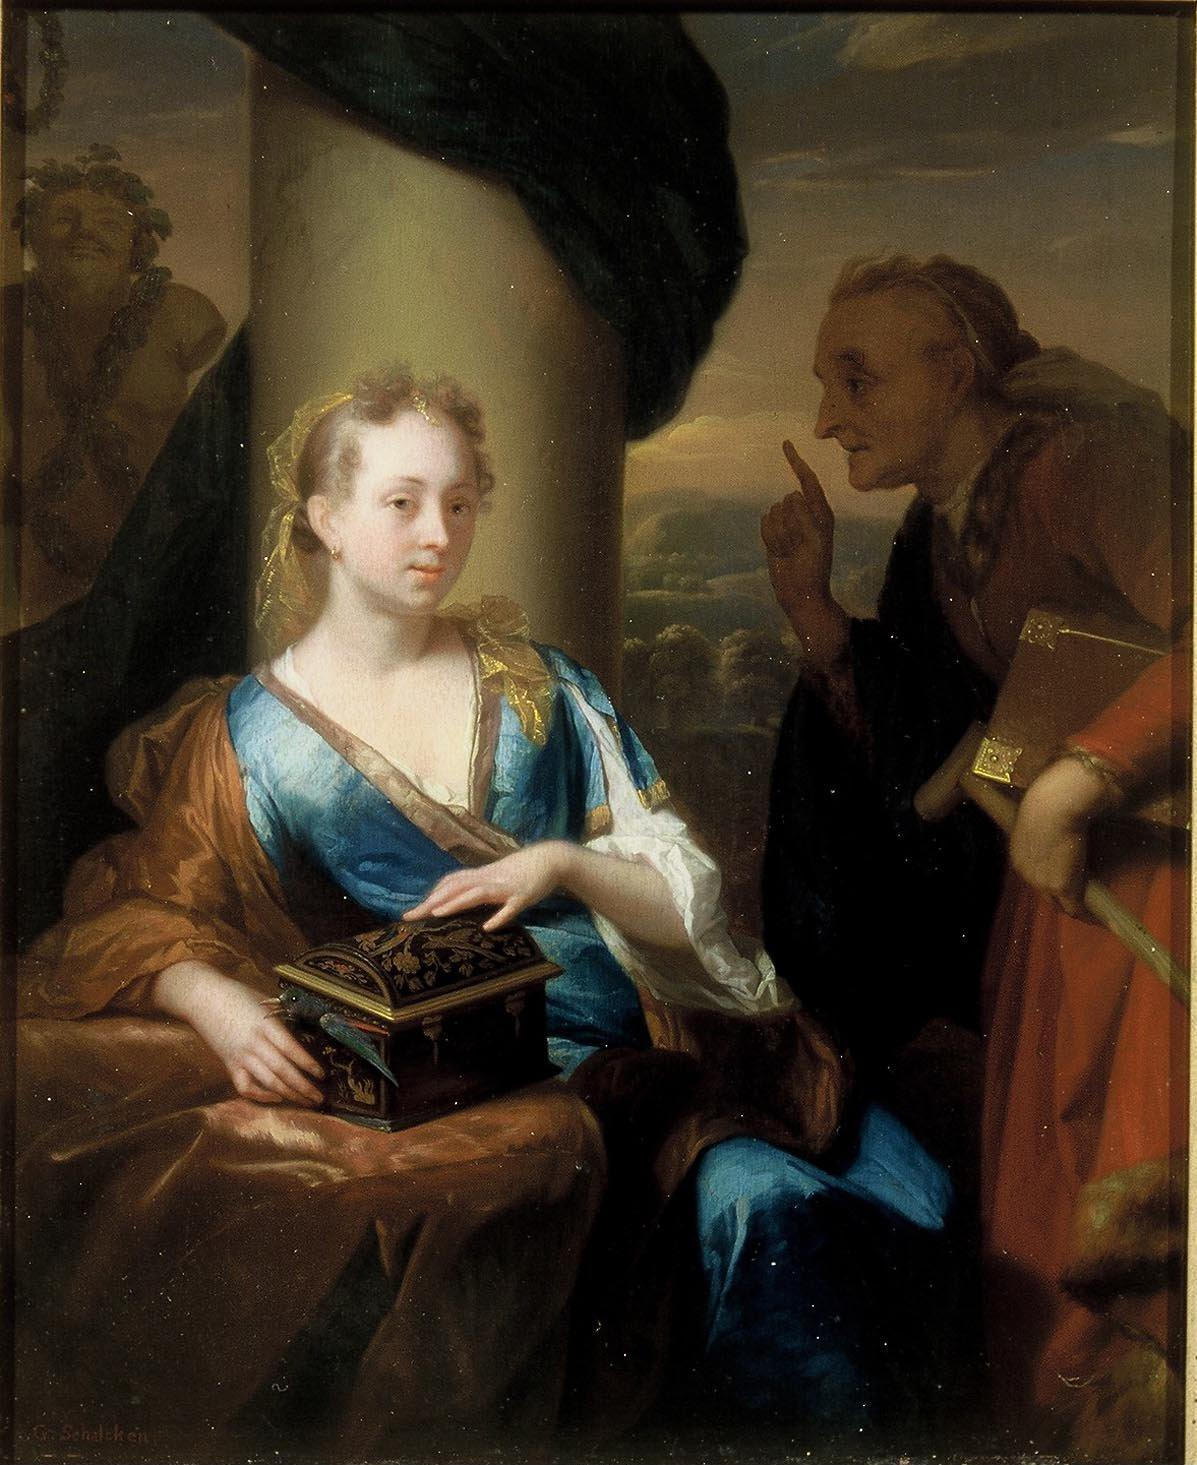 http://upload.wikimedia.org/wikipedia/commons/7/78/Godfried_Schalcken_001.jpg